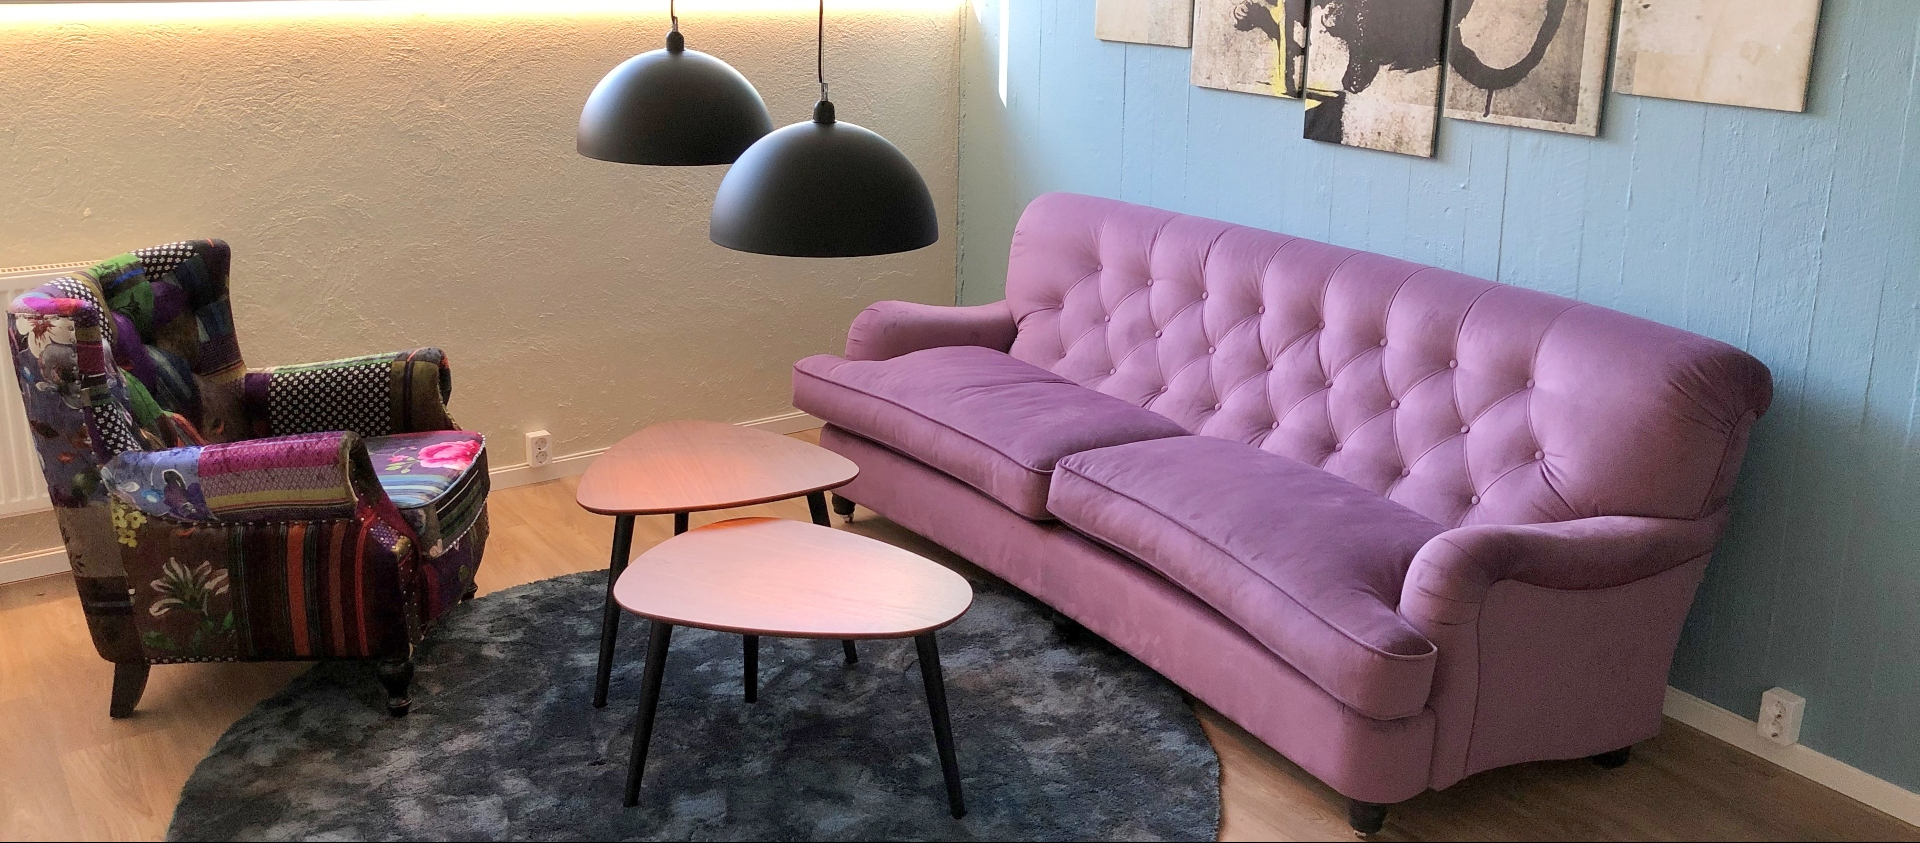 Lounge with a pink sofa, table and an armchair